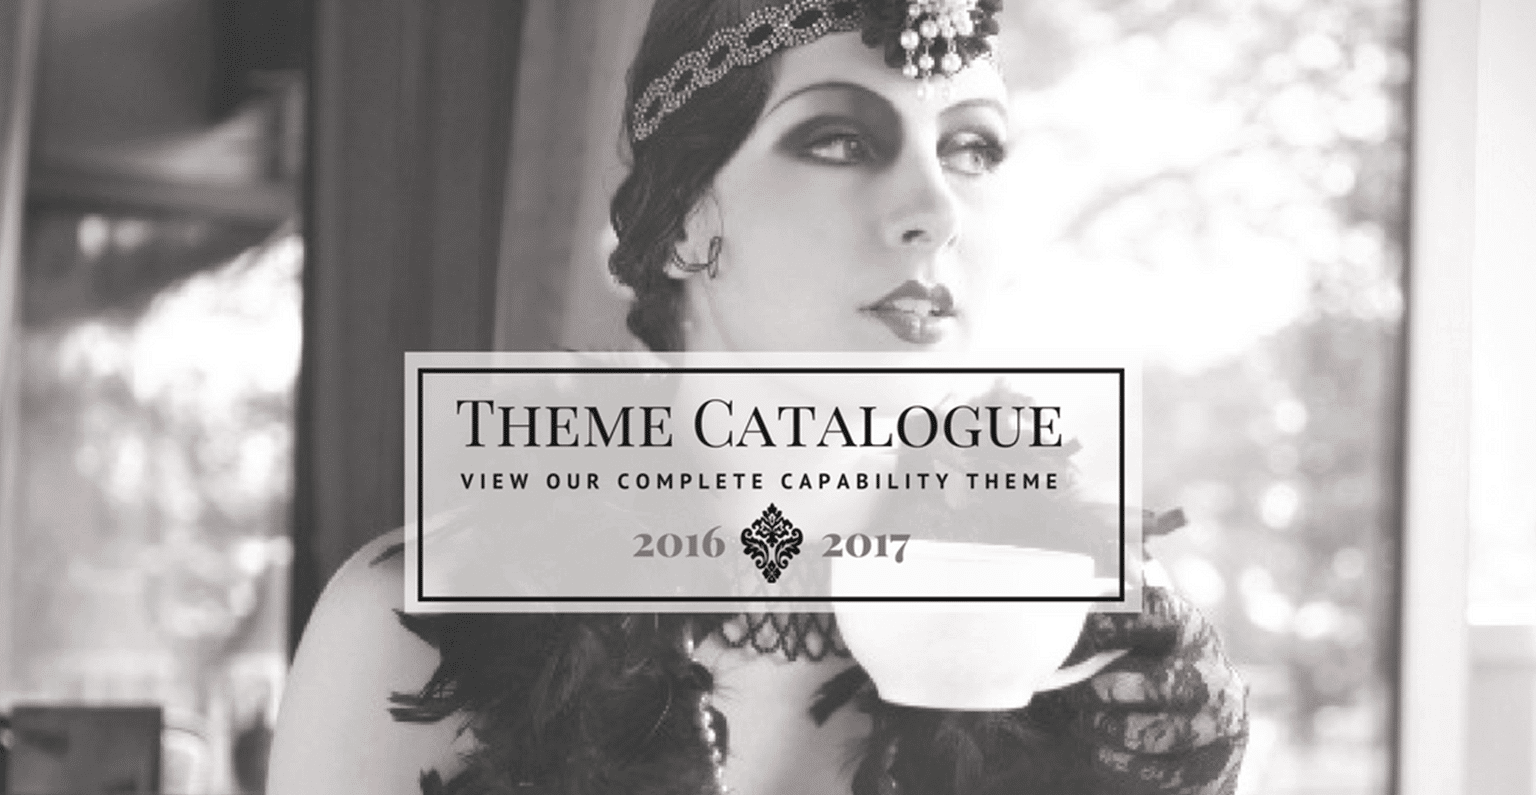 Theme Catalogue